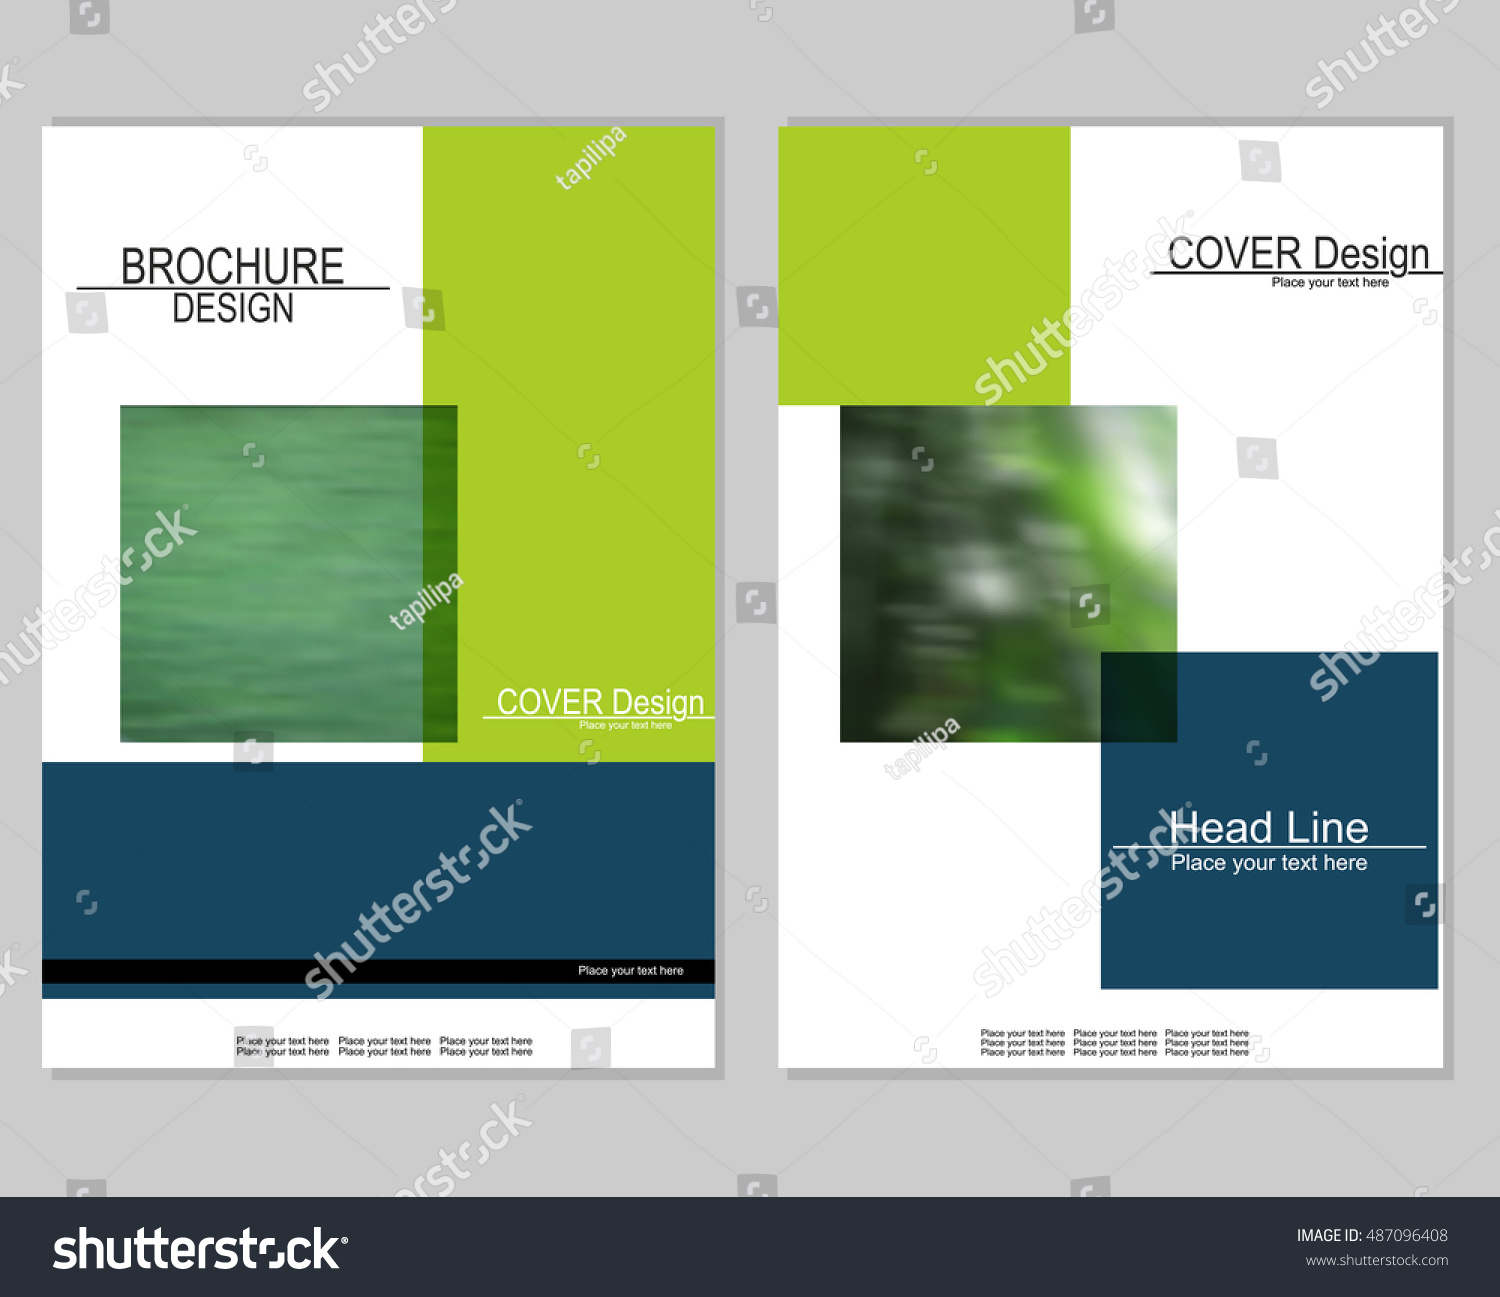 vector brochure cover templates blurred plants eps 10 mesh vector brochure cover templates blurred plants eps 10 mesh background